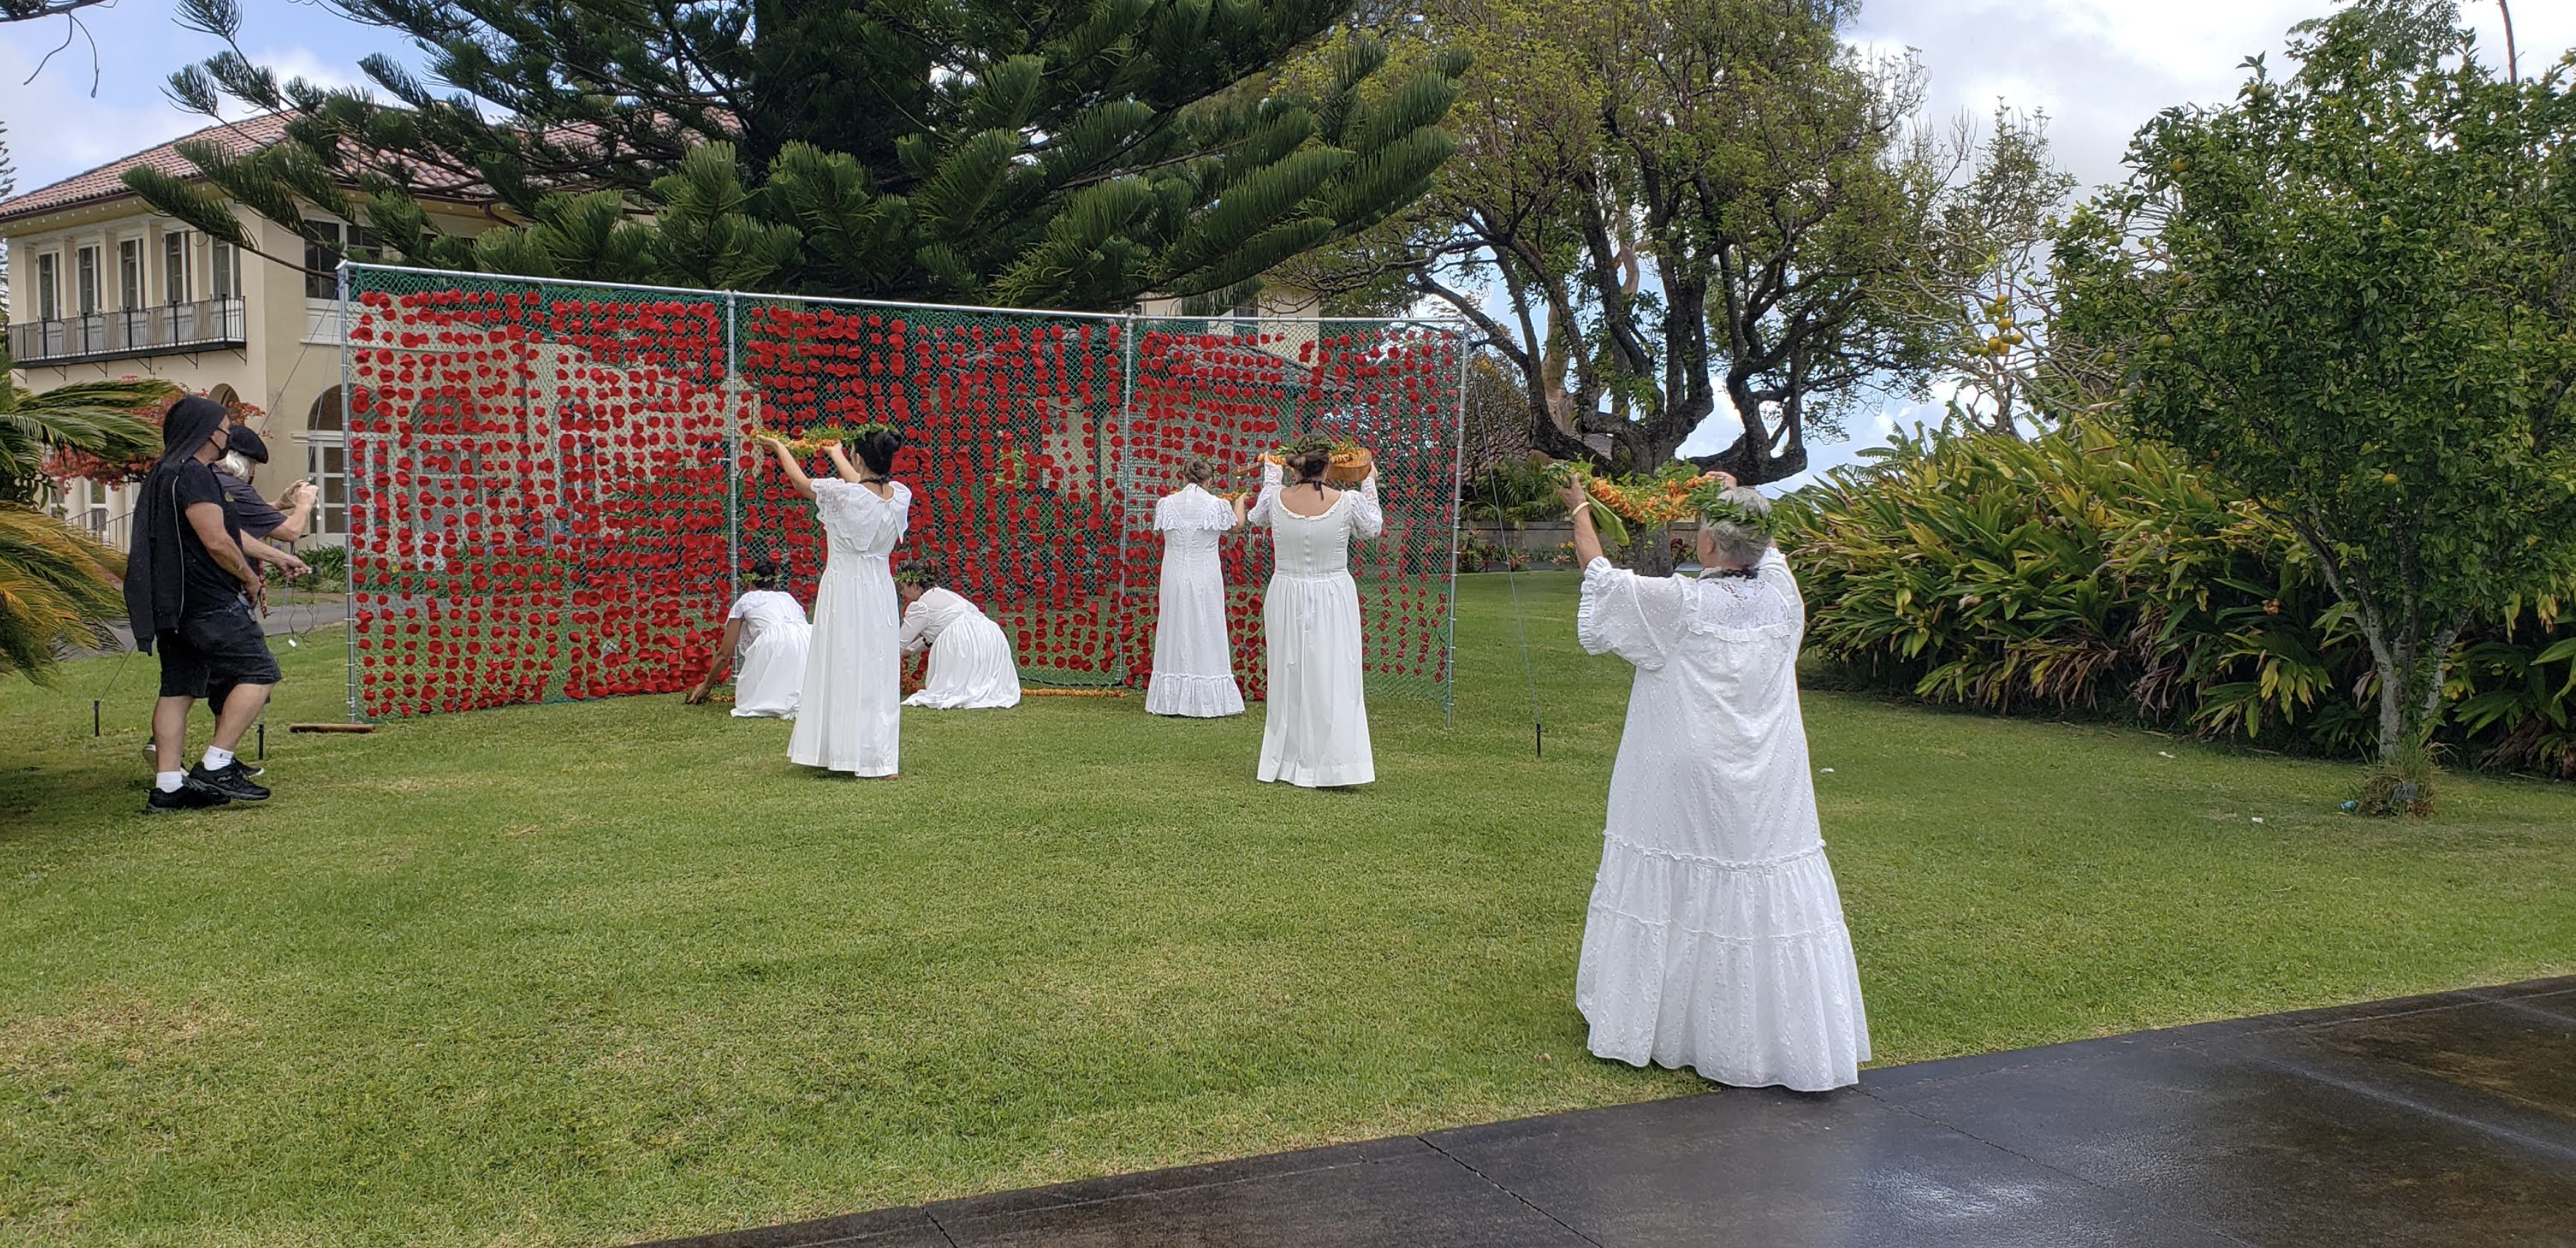 Hui No'eau Art Installation on Maui Honors Lives Lost to COVID-19 in Hawai'i